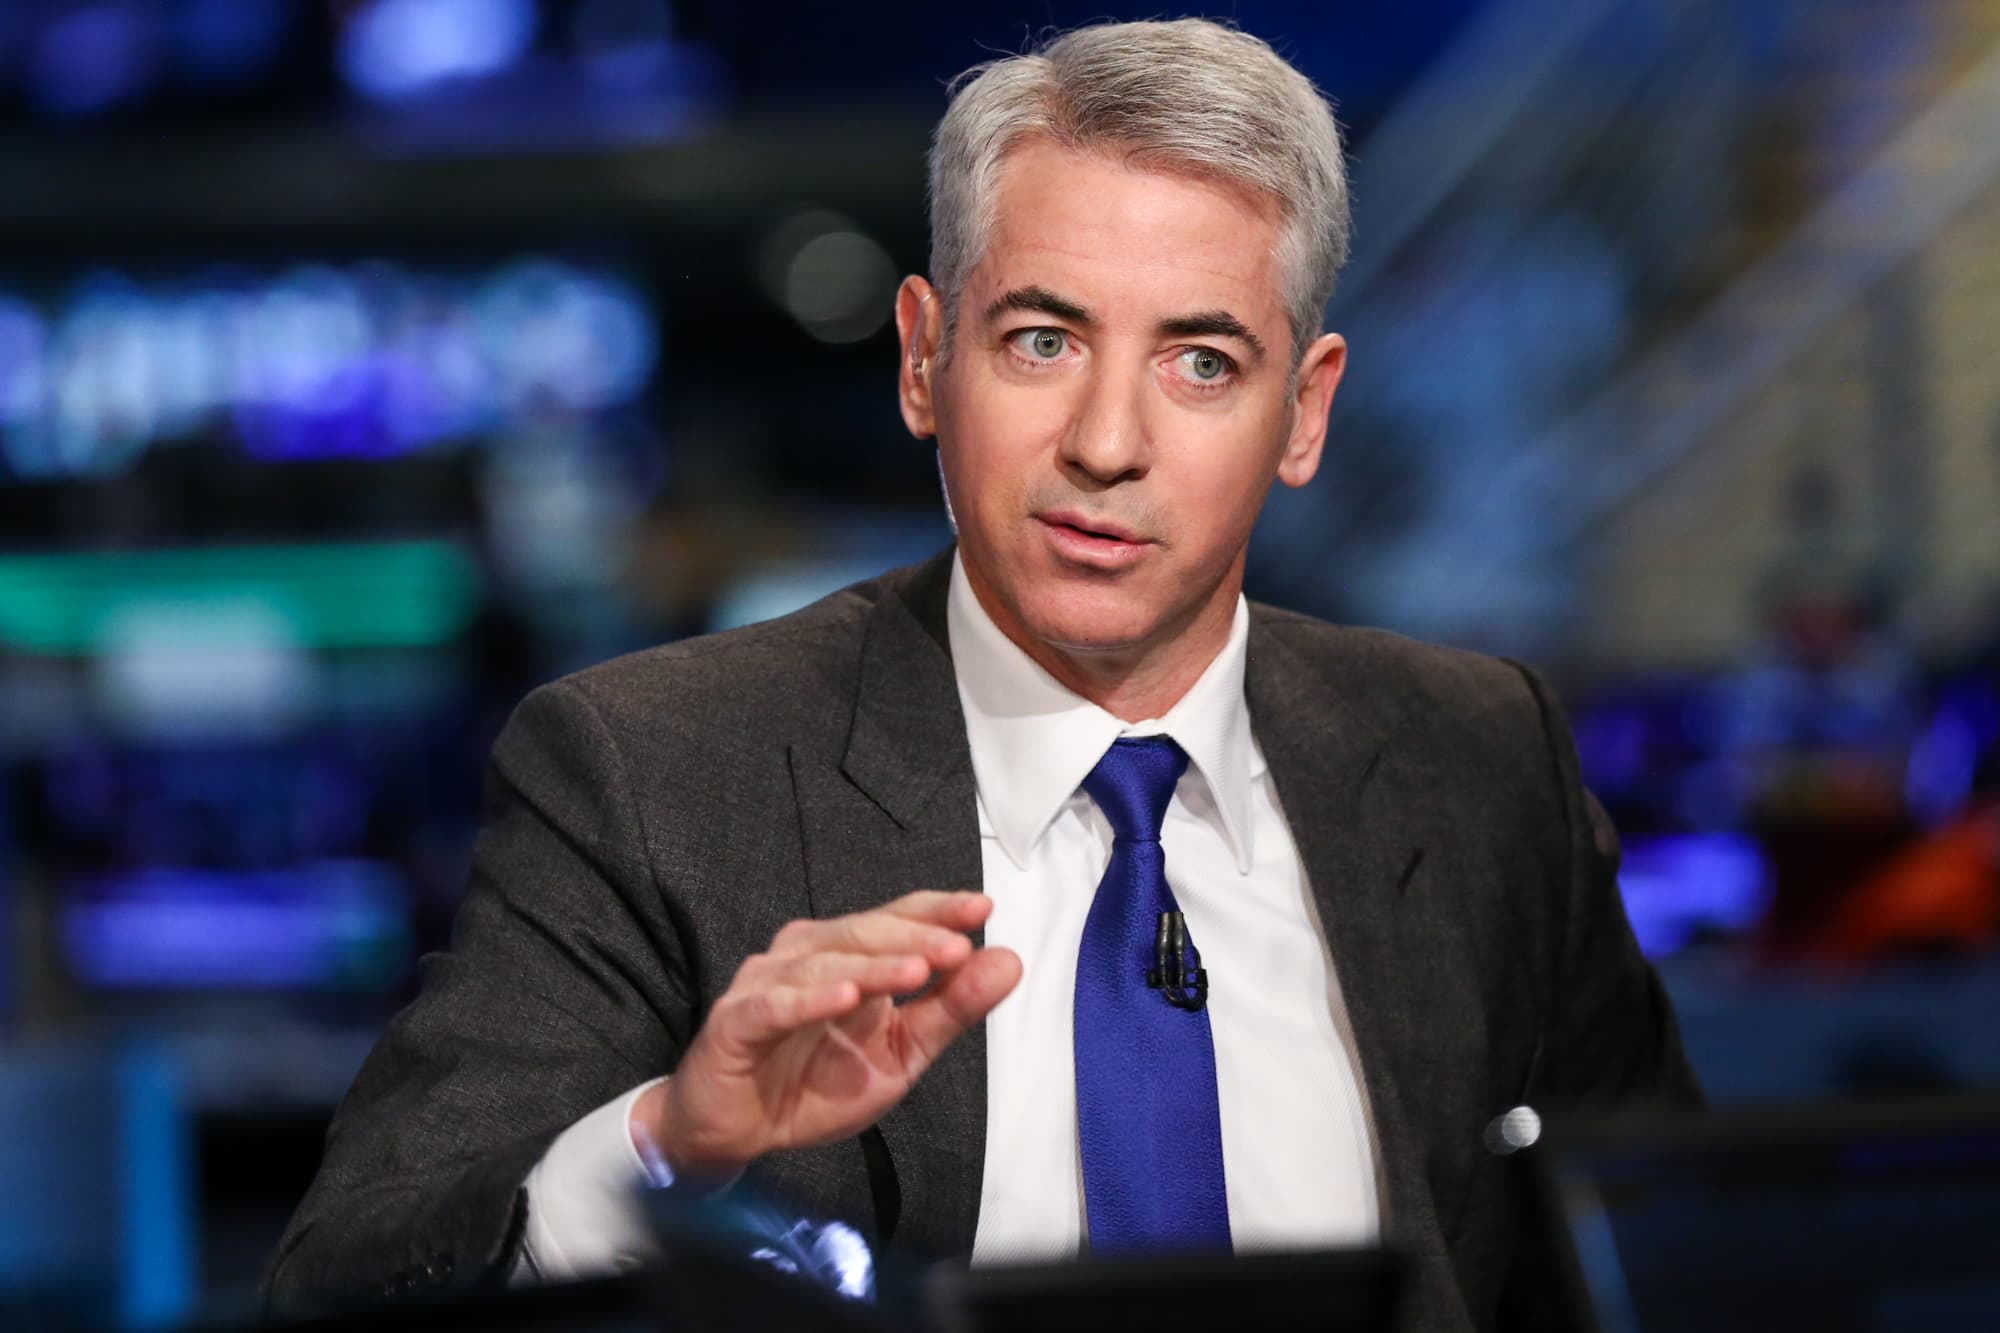 Bill Ackman is making a comeback with his hedge fund up more than 24% this year